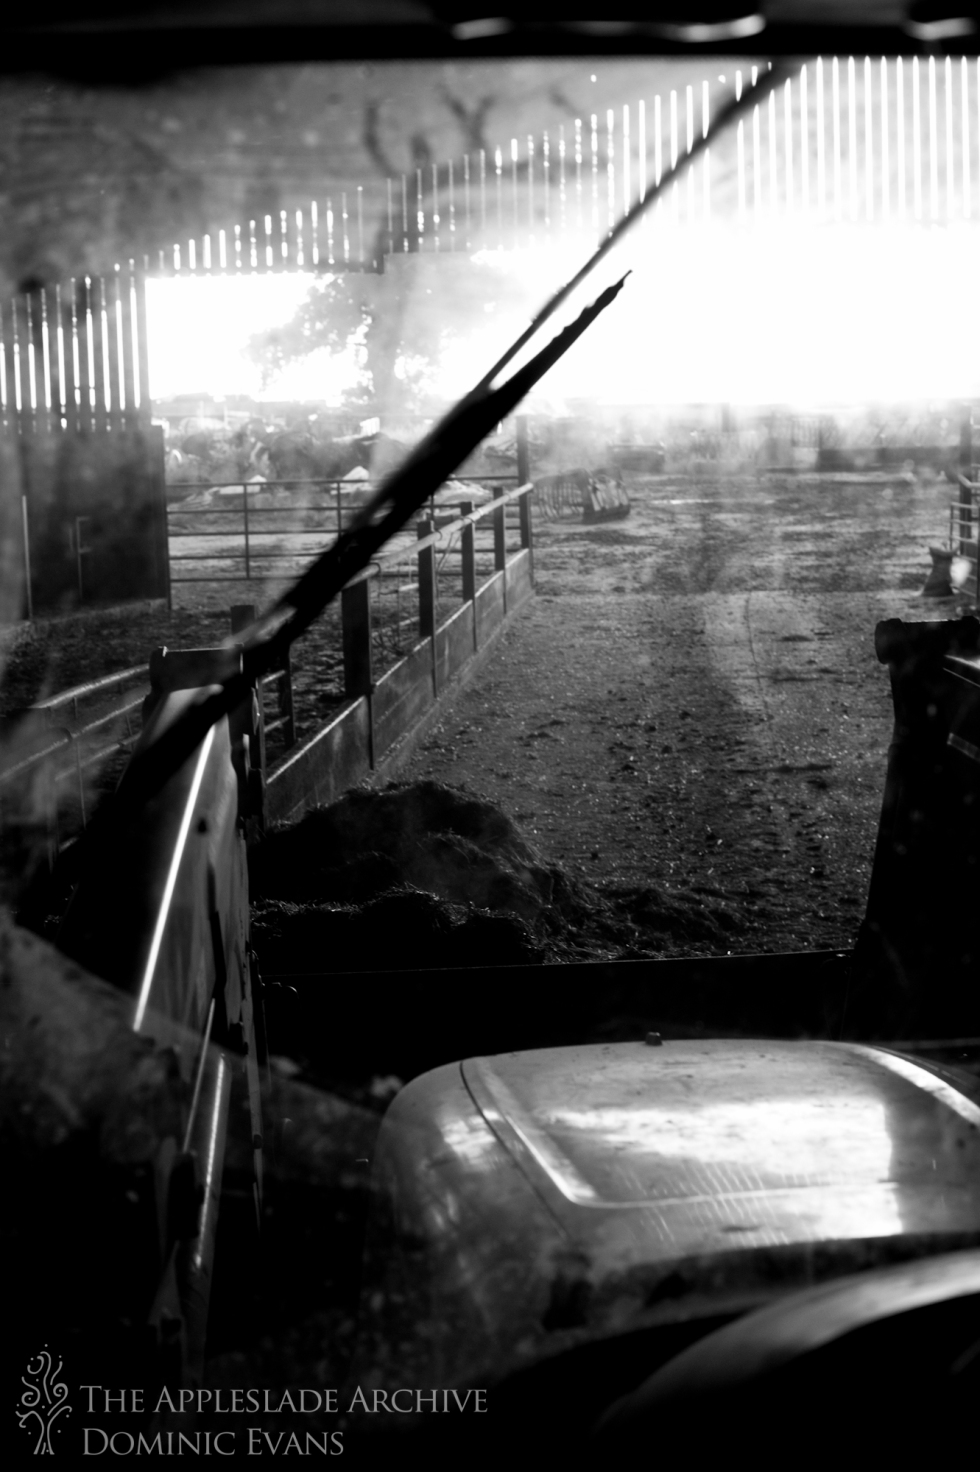 Using a tractor to pick up cattle feed, Ayles Farm, Avon, Dorset, 15th Sept 2013